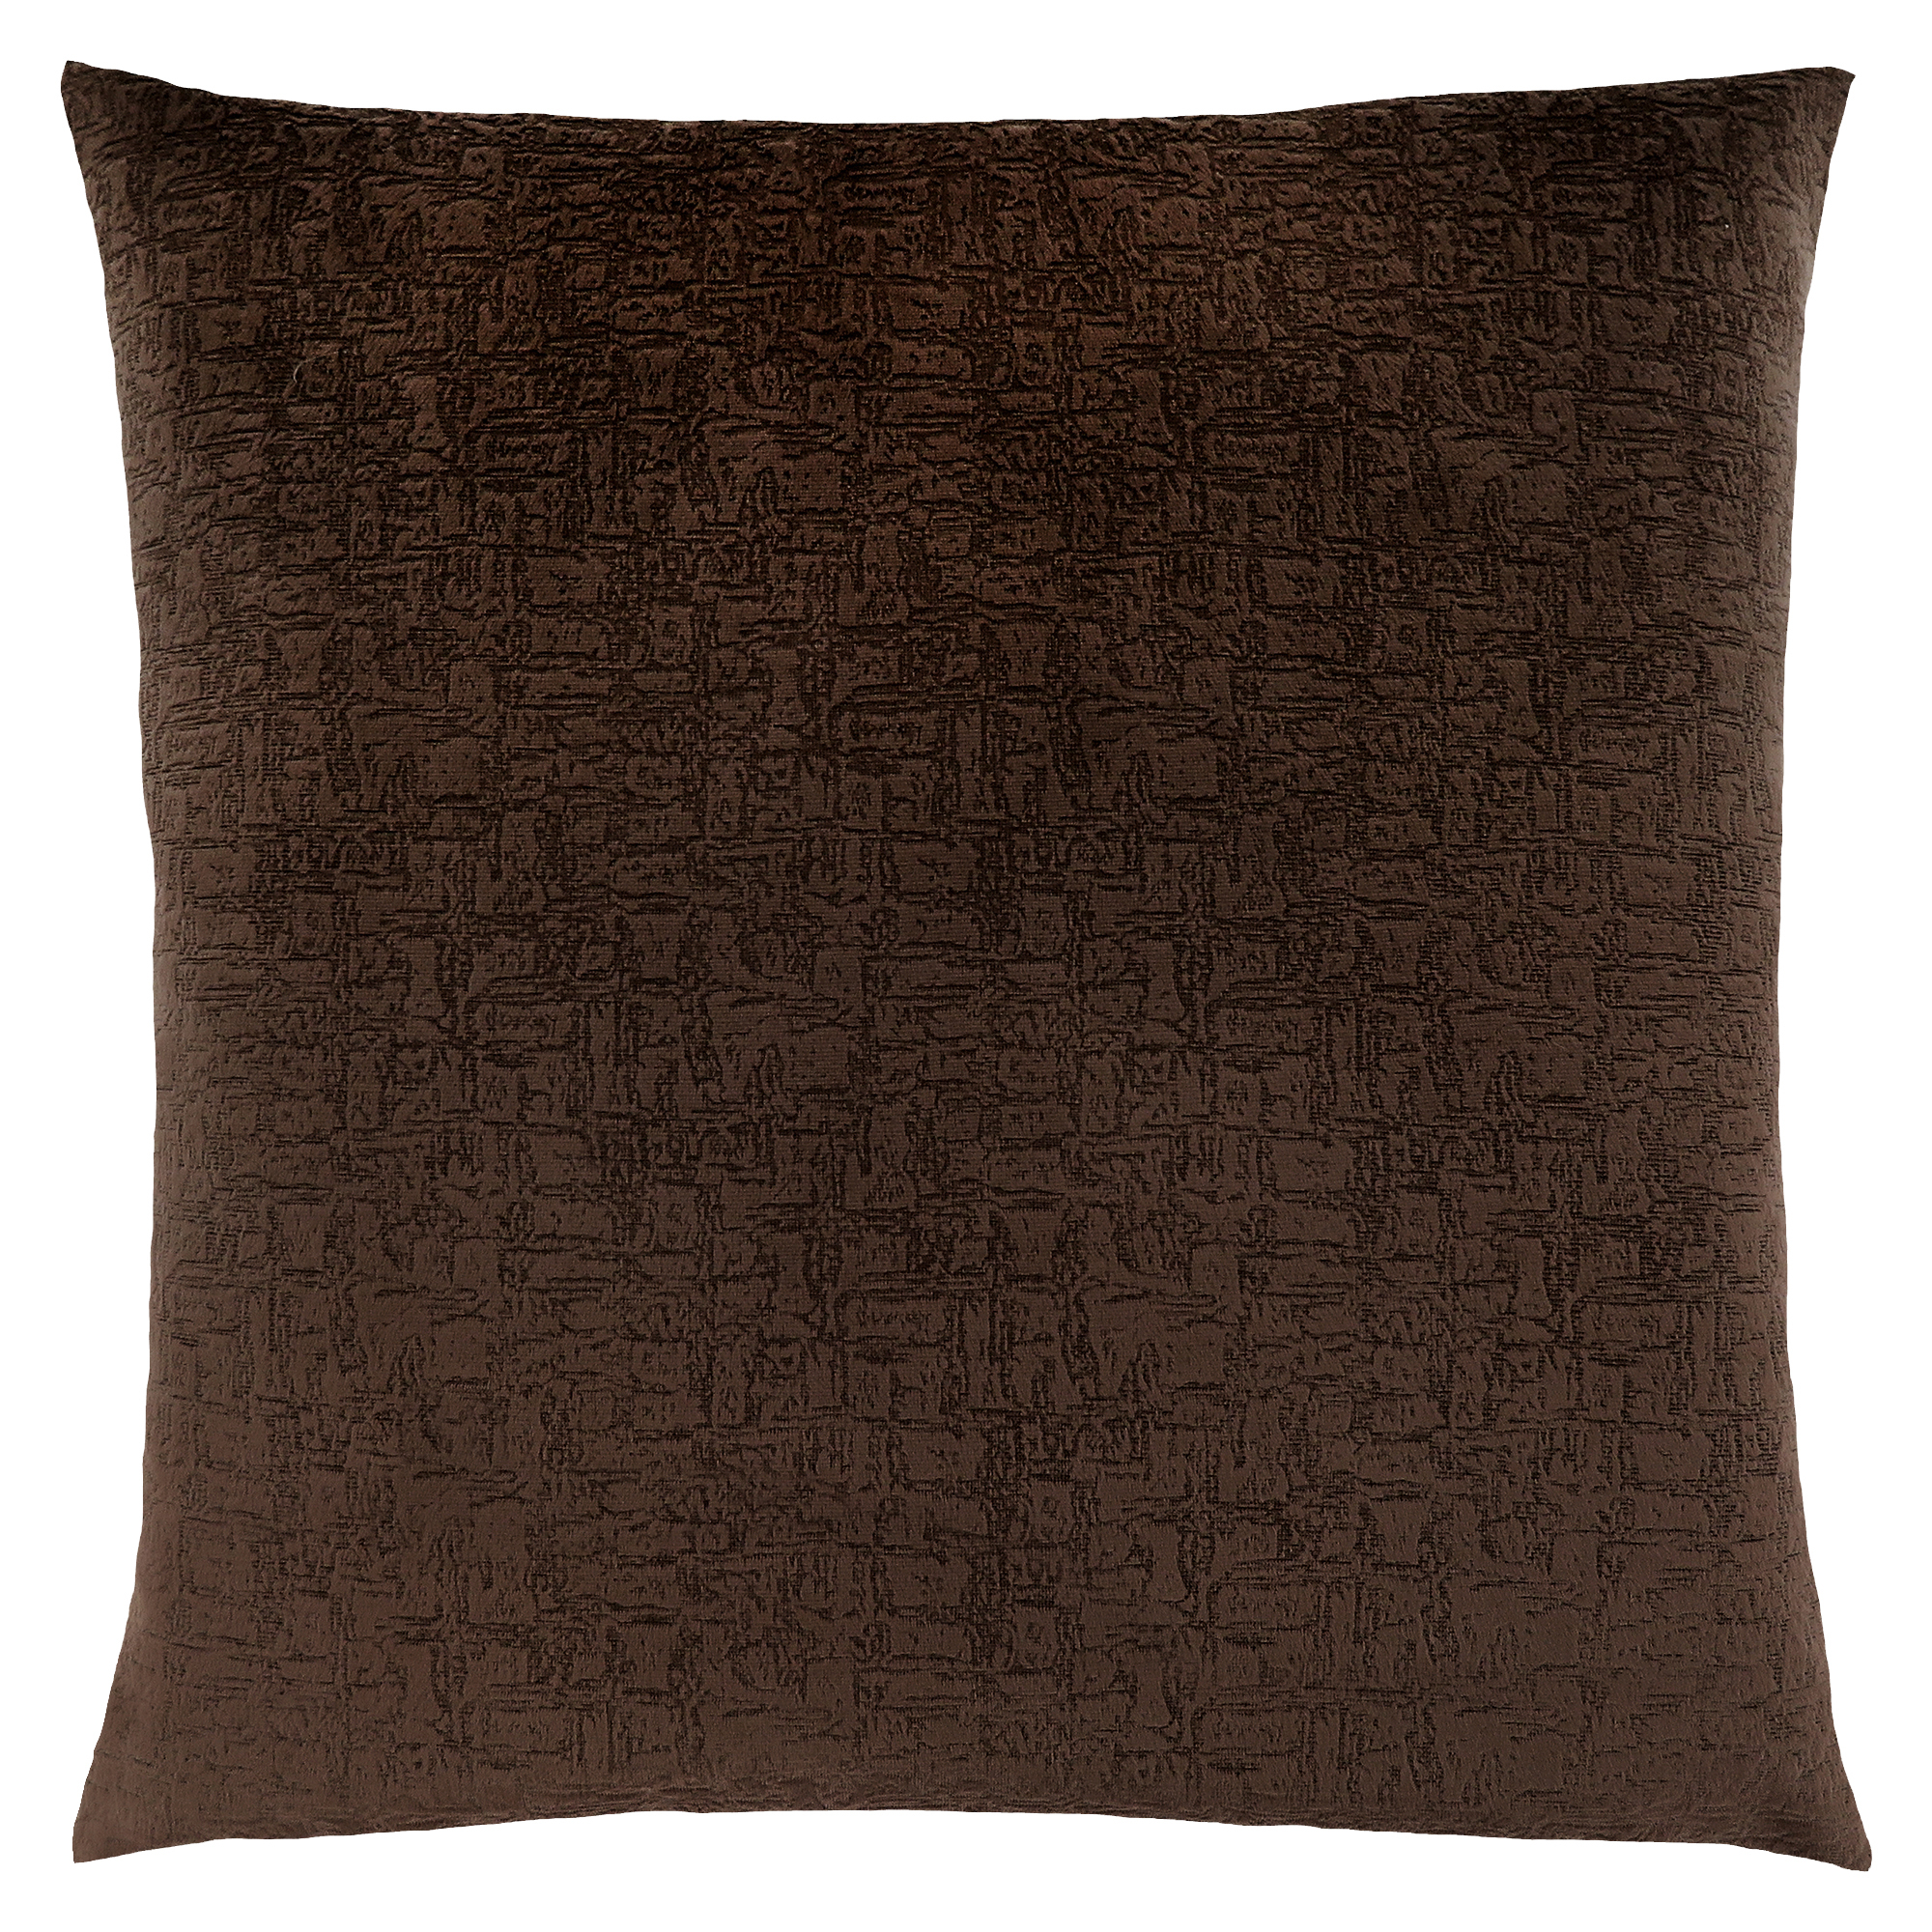 "PILLOW - 18""X 18"" / DARK BROWN MOSAIC VELVET / 1PC"